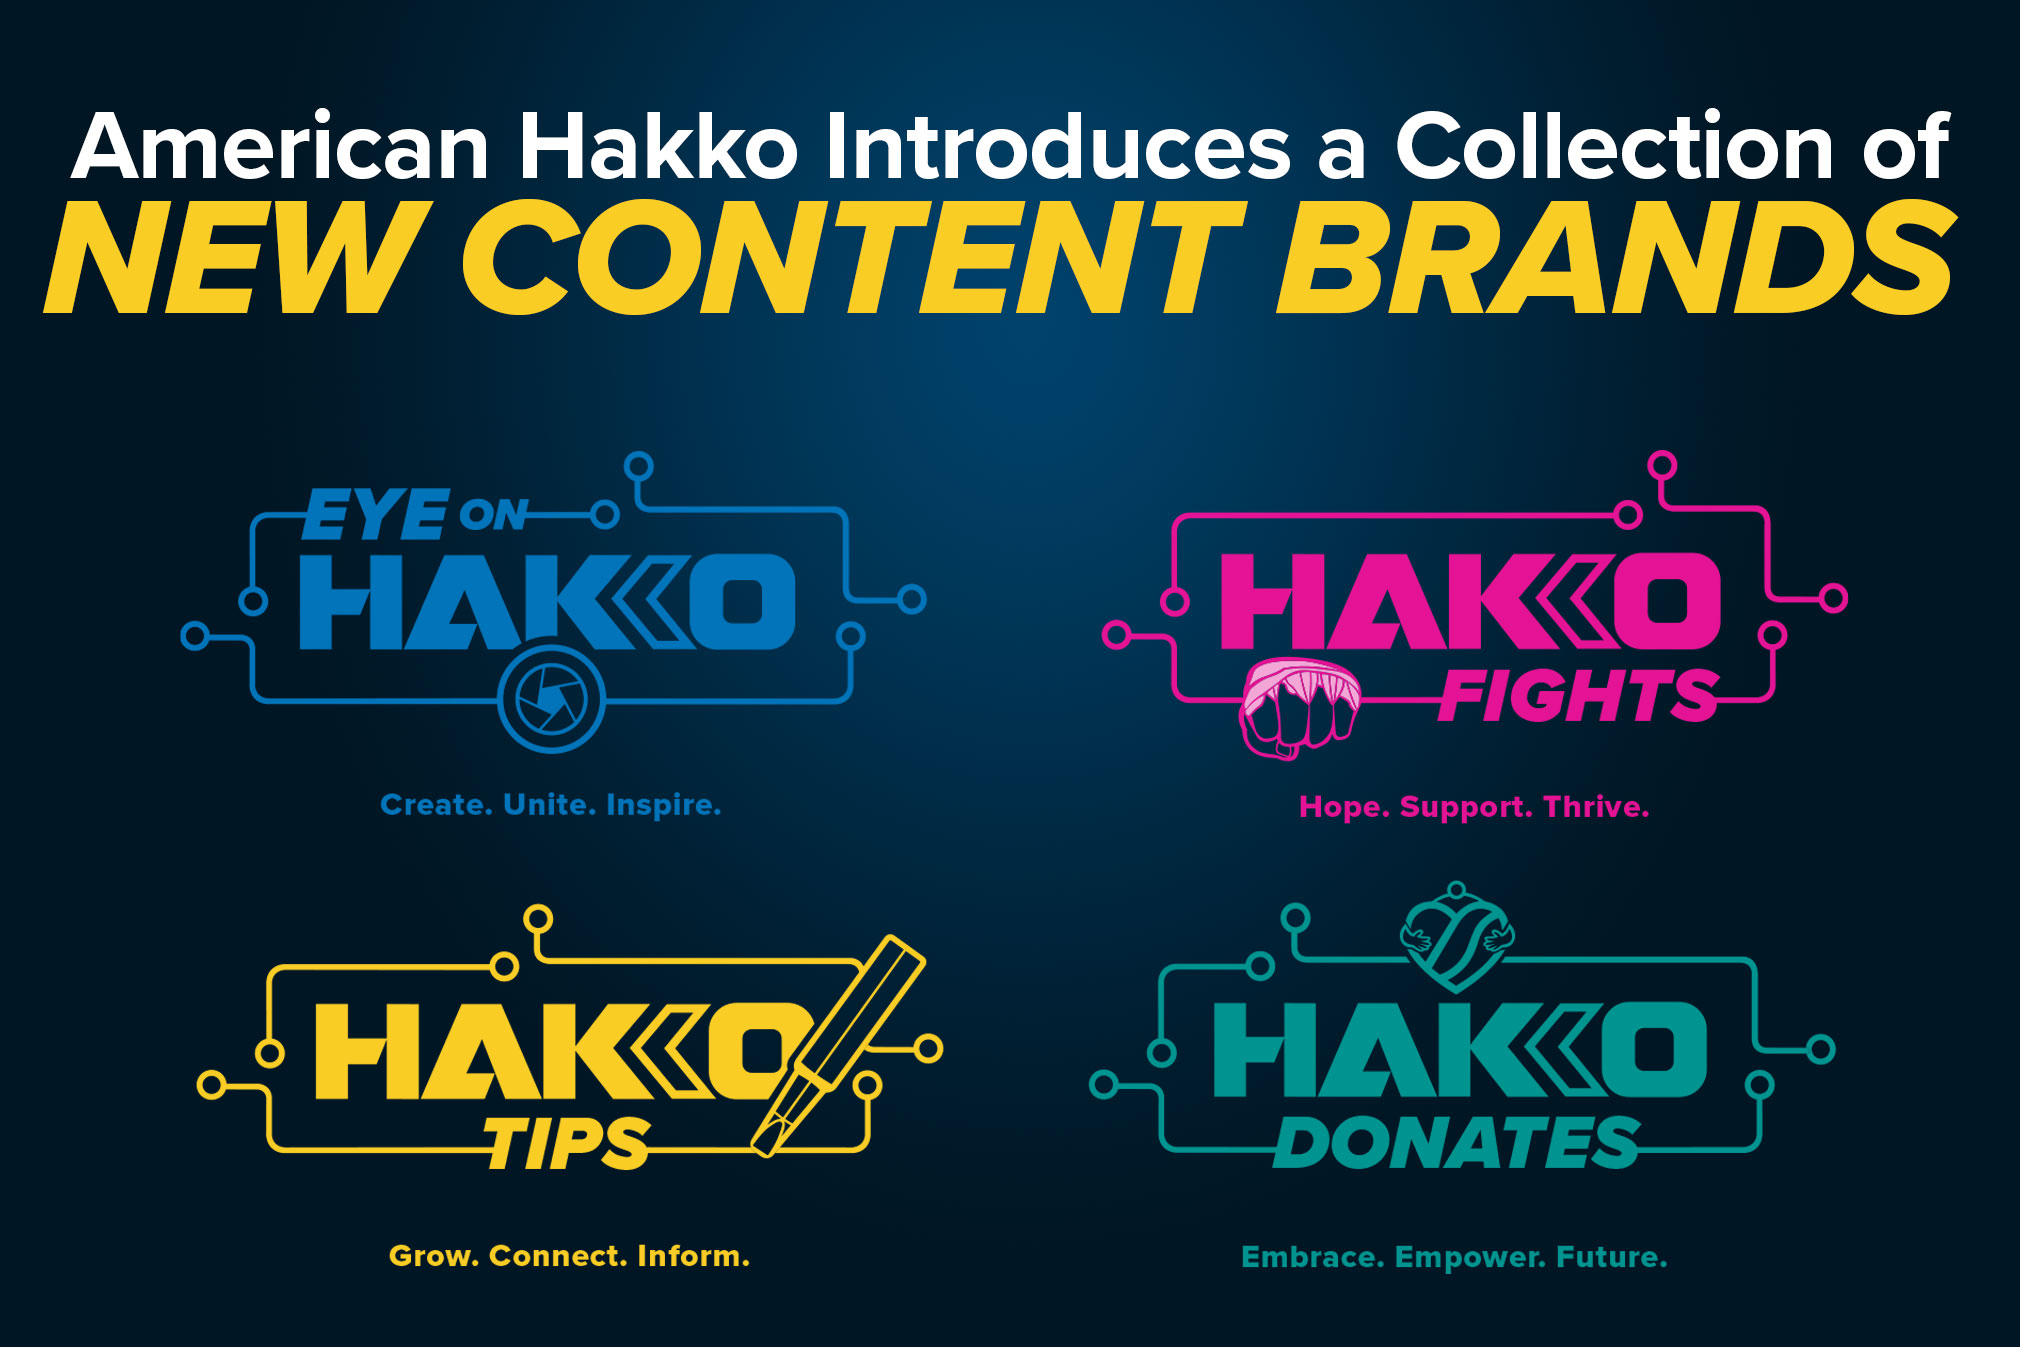 American Hakko Introduces a Collection of New Content Brands